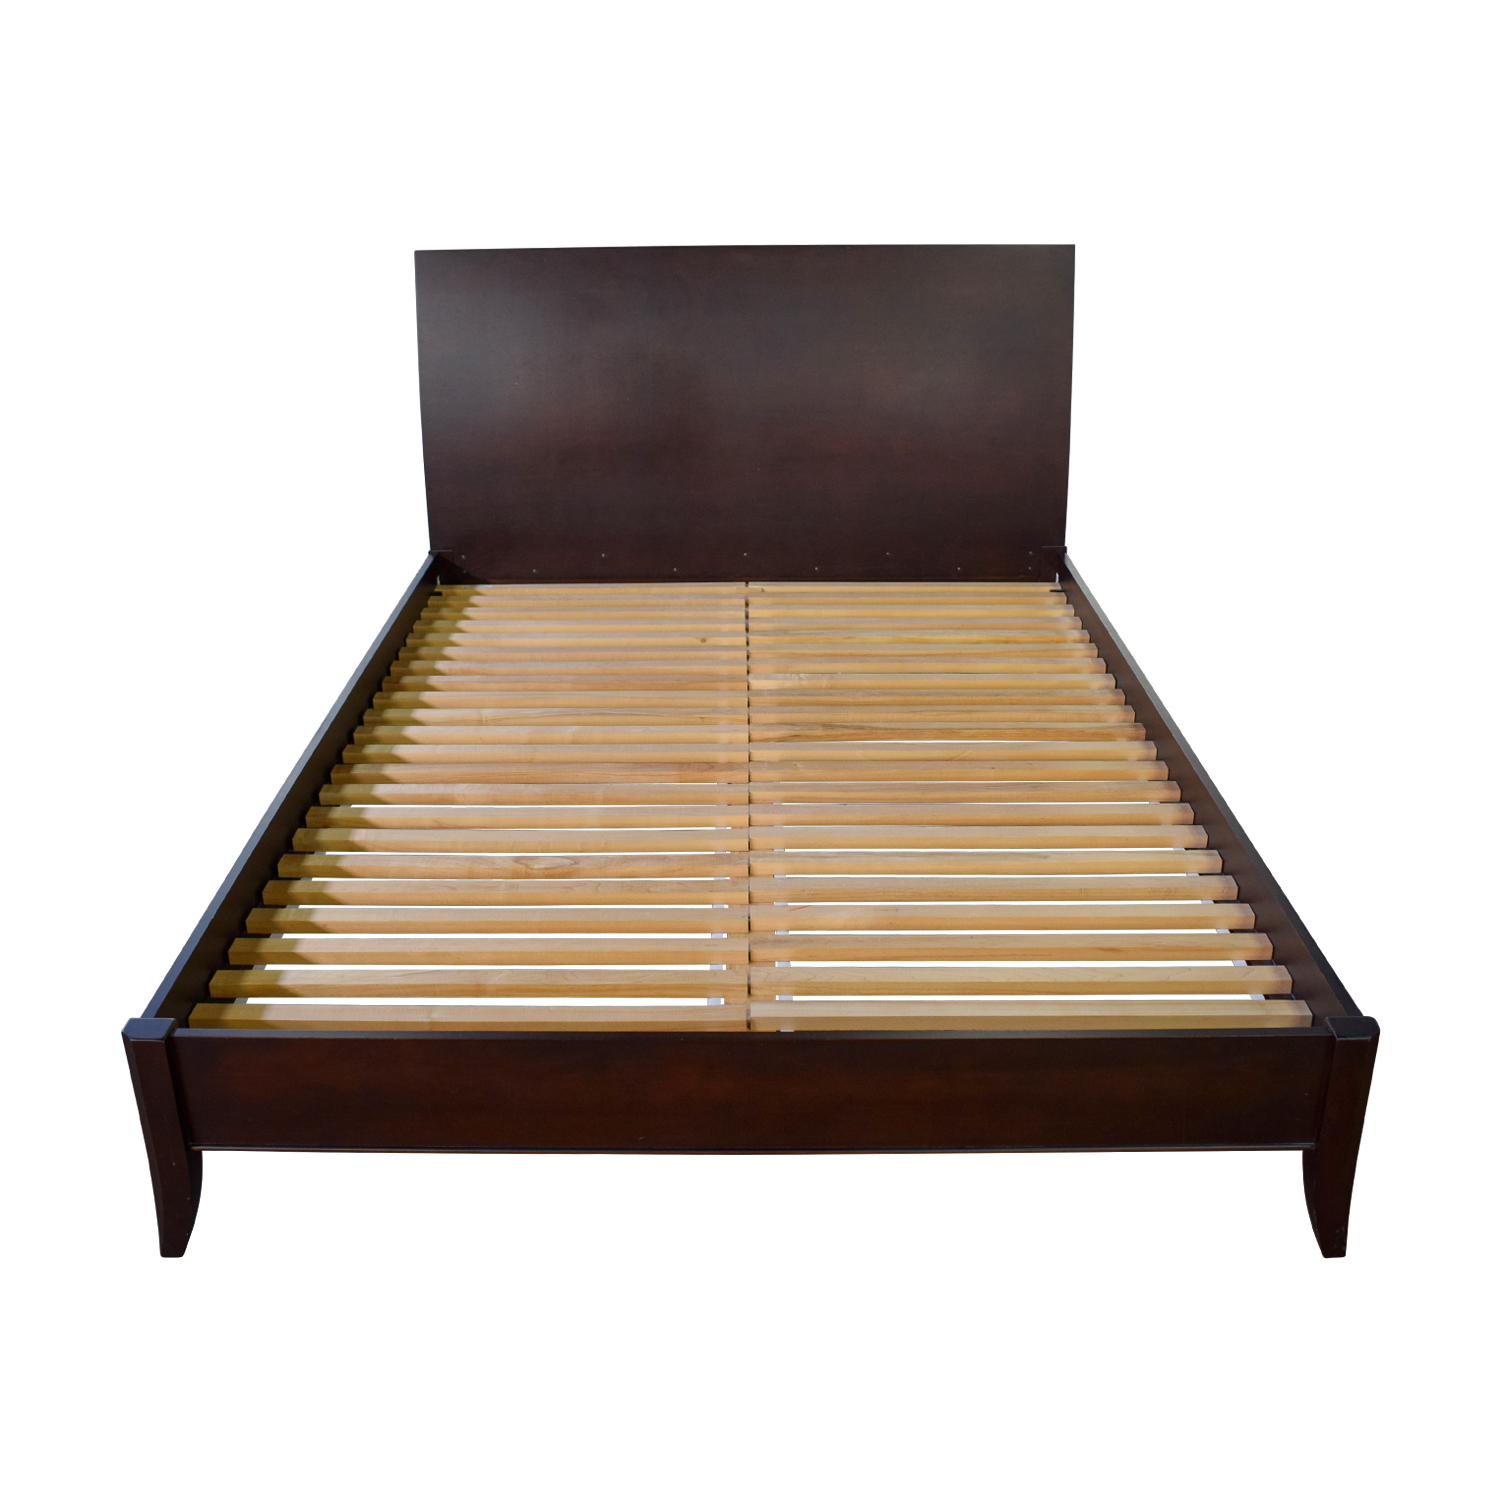 Baronet Canada Baronet Canada Wood Queen Platform Bed Frame second hand